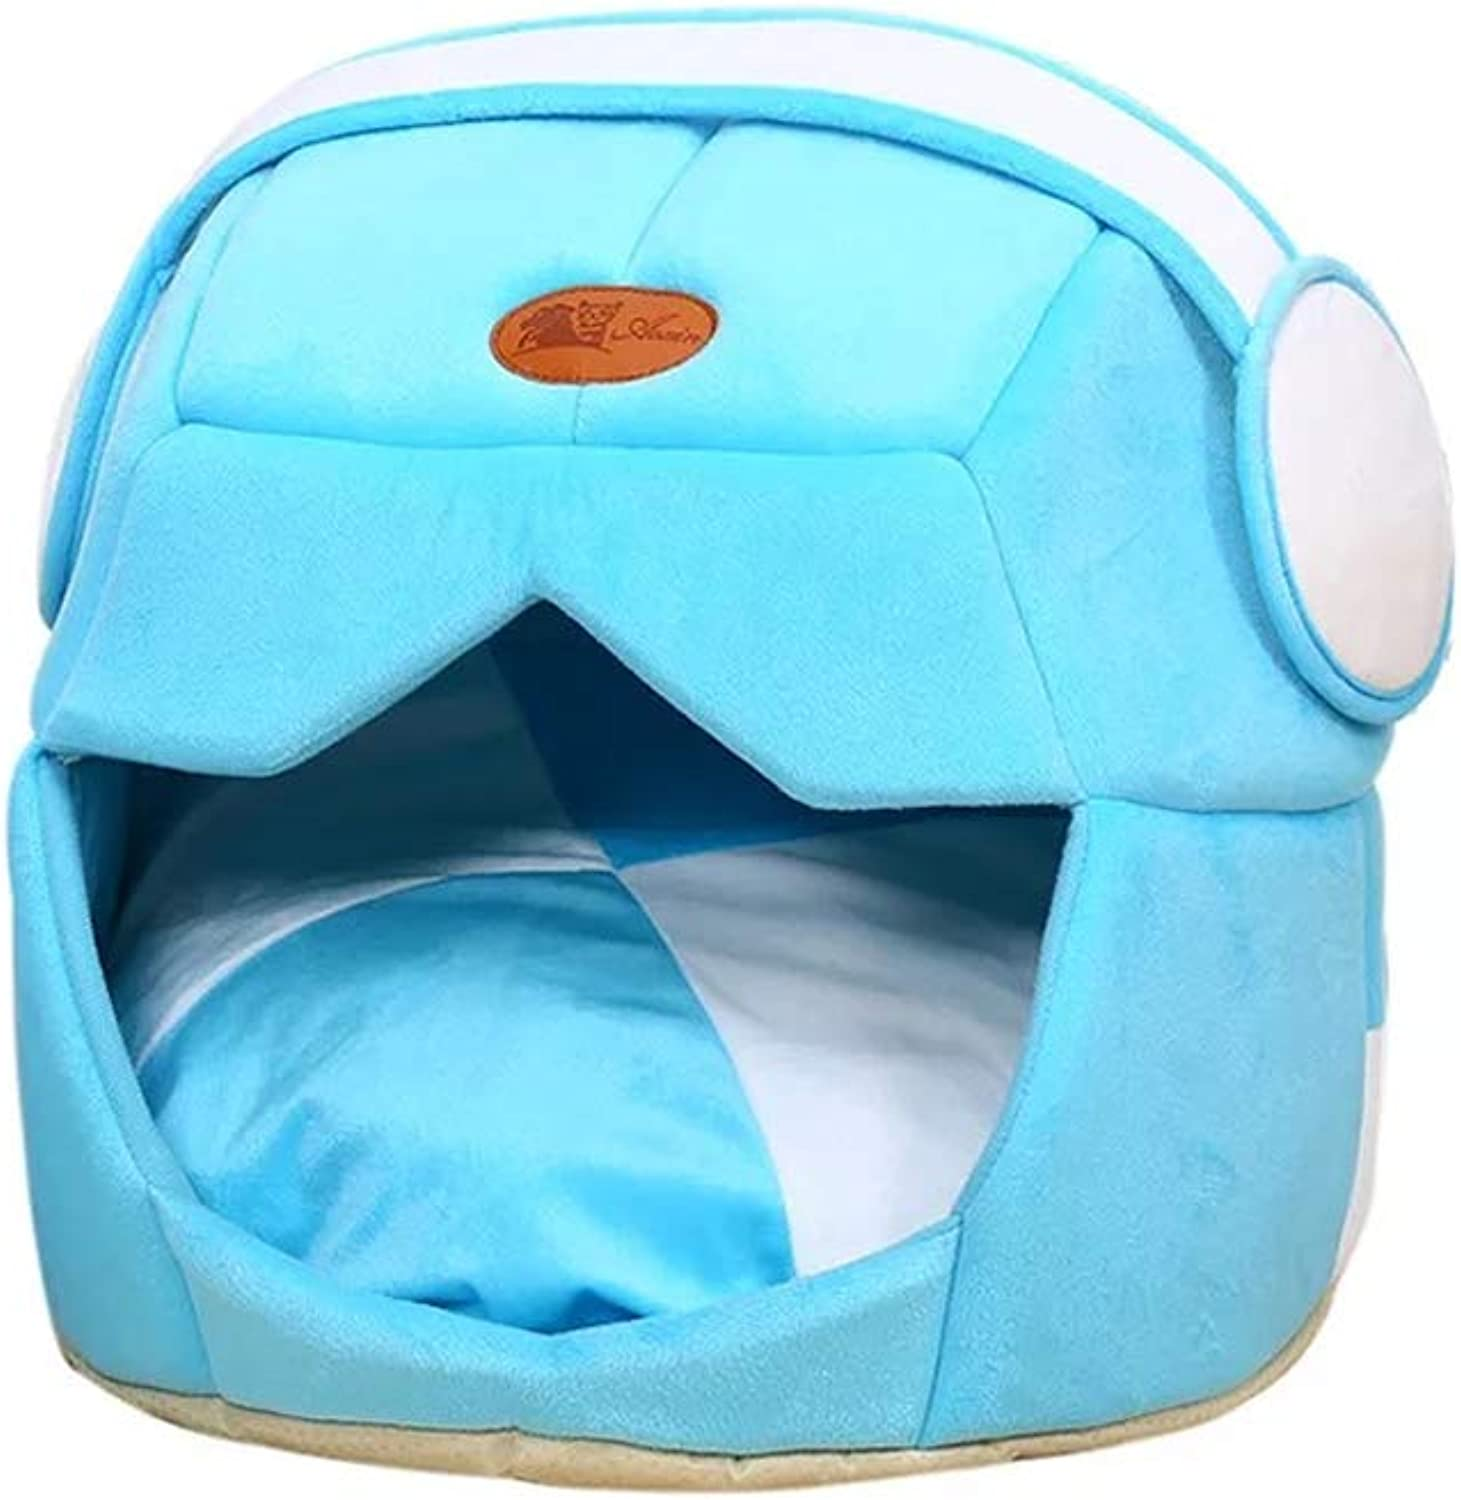 Cat Bed, Semi-Enclosed Small Dog Bed Four Seasons Available Warm Dog House Yurt, Multi-Size (color   bluee, Size   S)